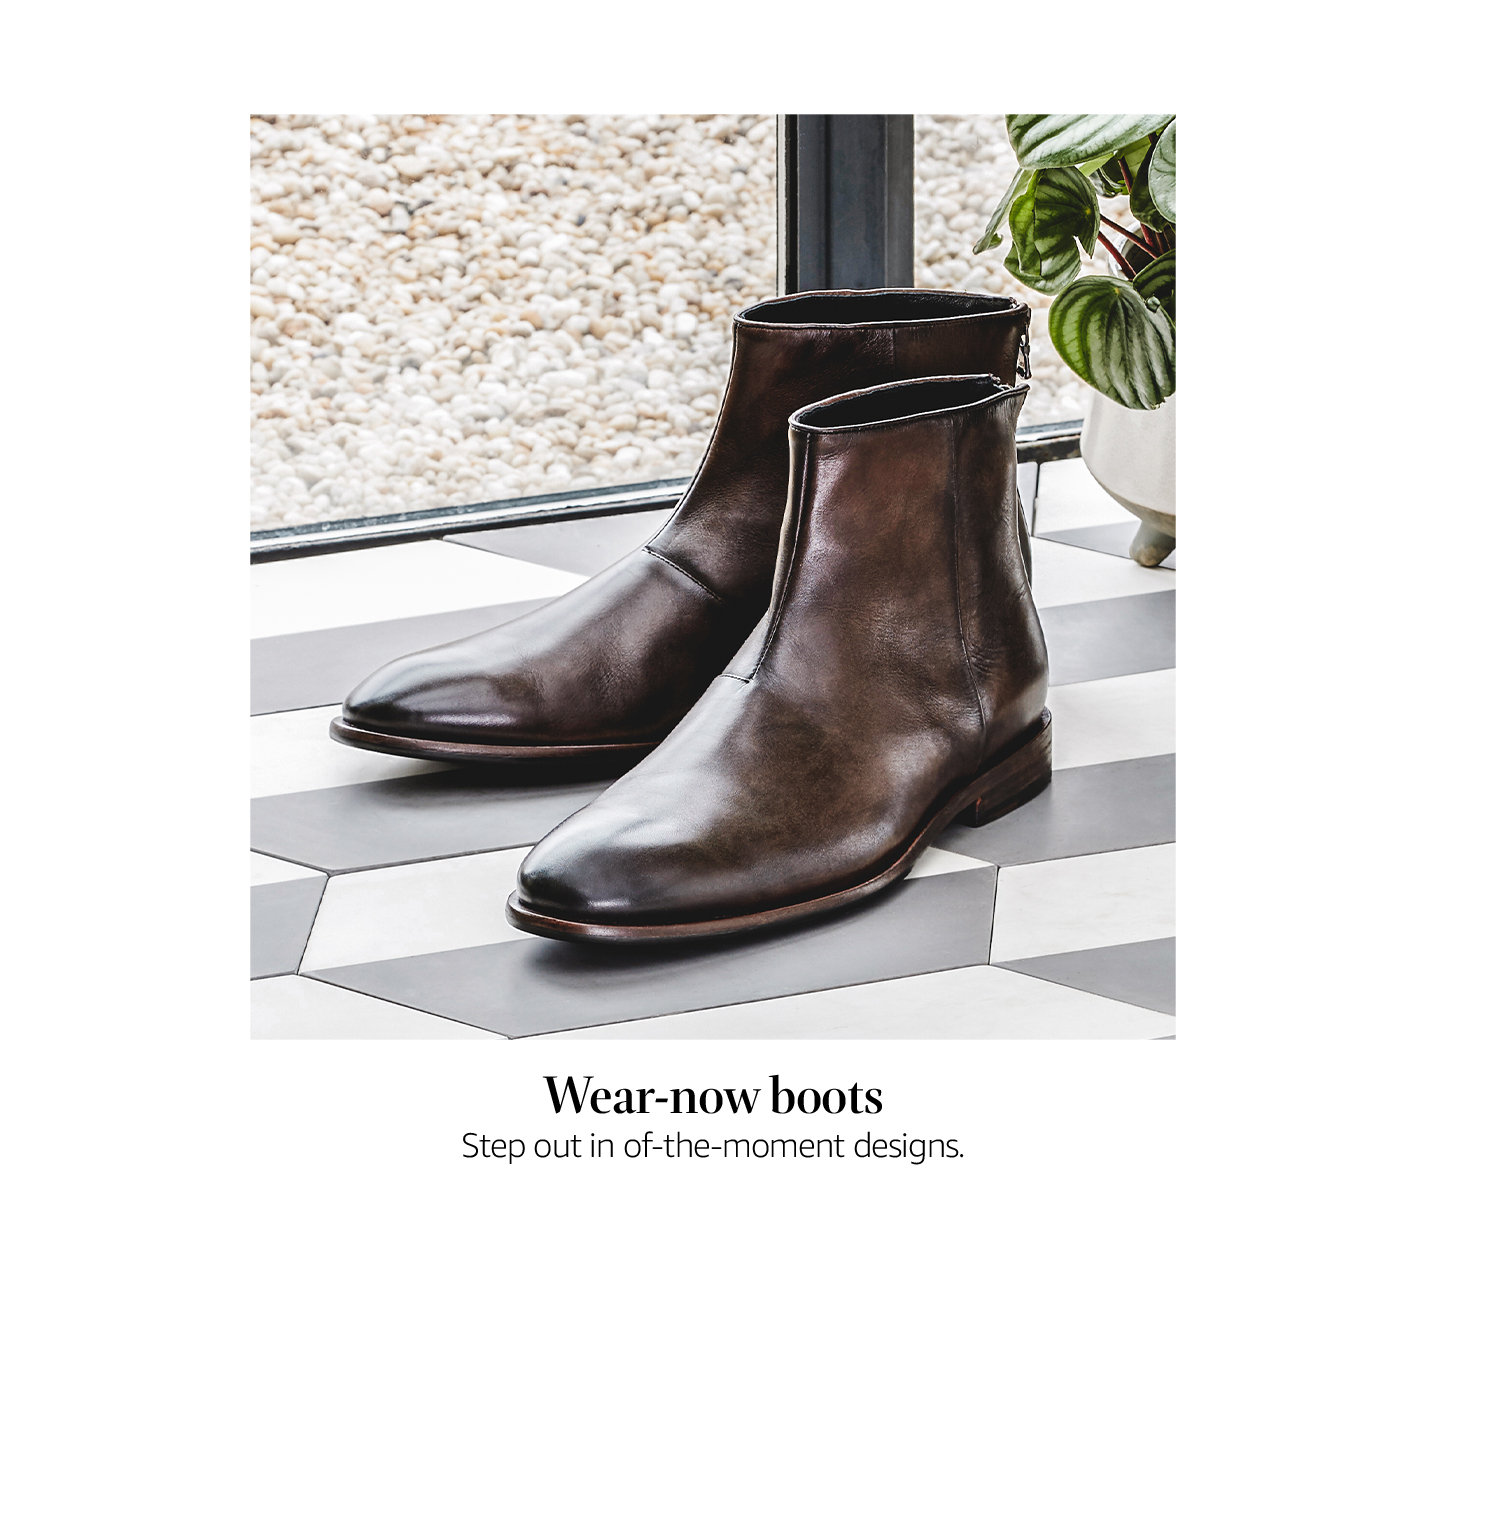 Wear-now boots